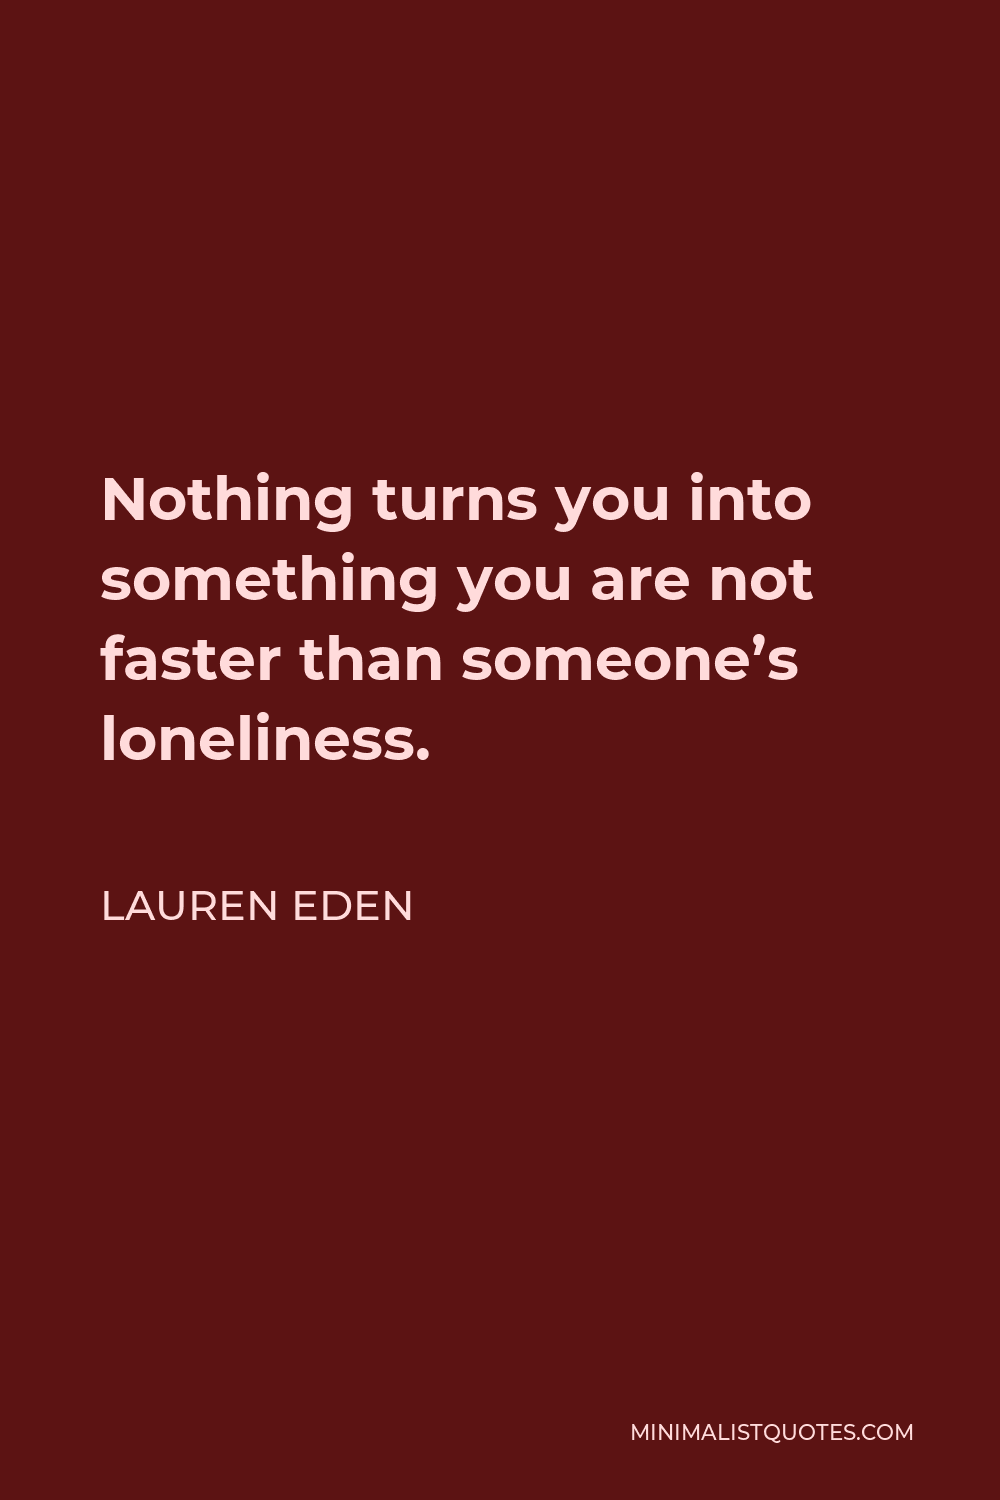 Lauren Eden Quote - Nothing turns you into something you are not faster than someone's loneliness.